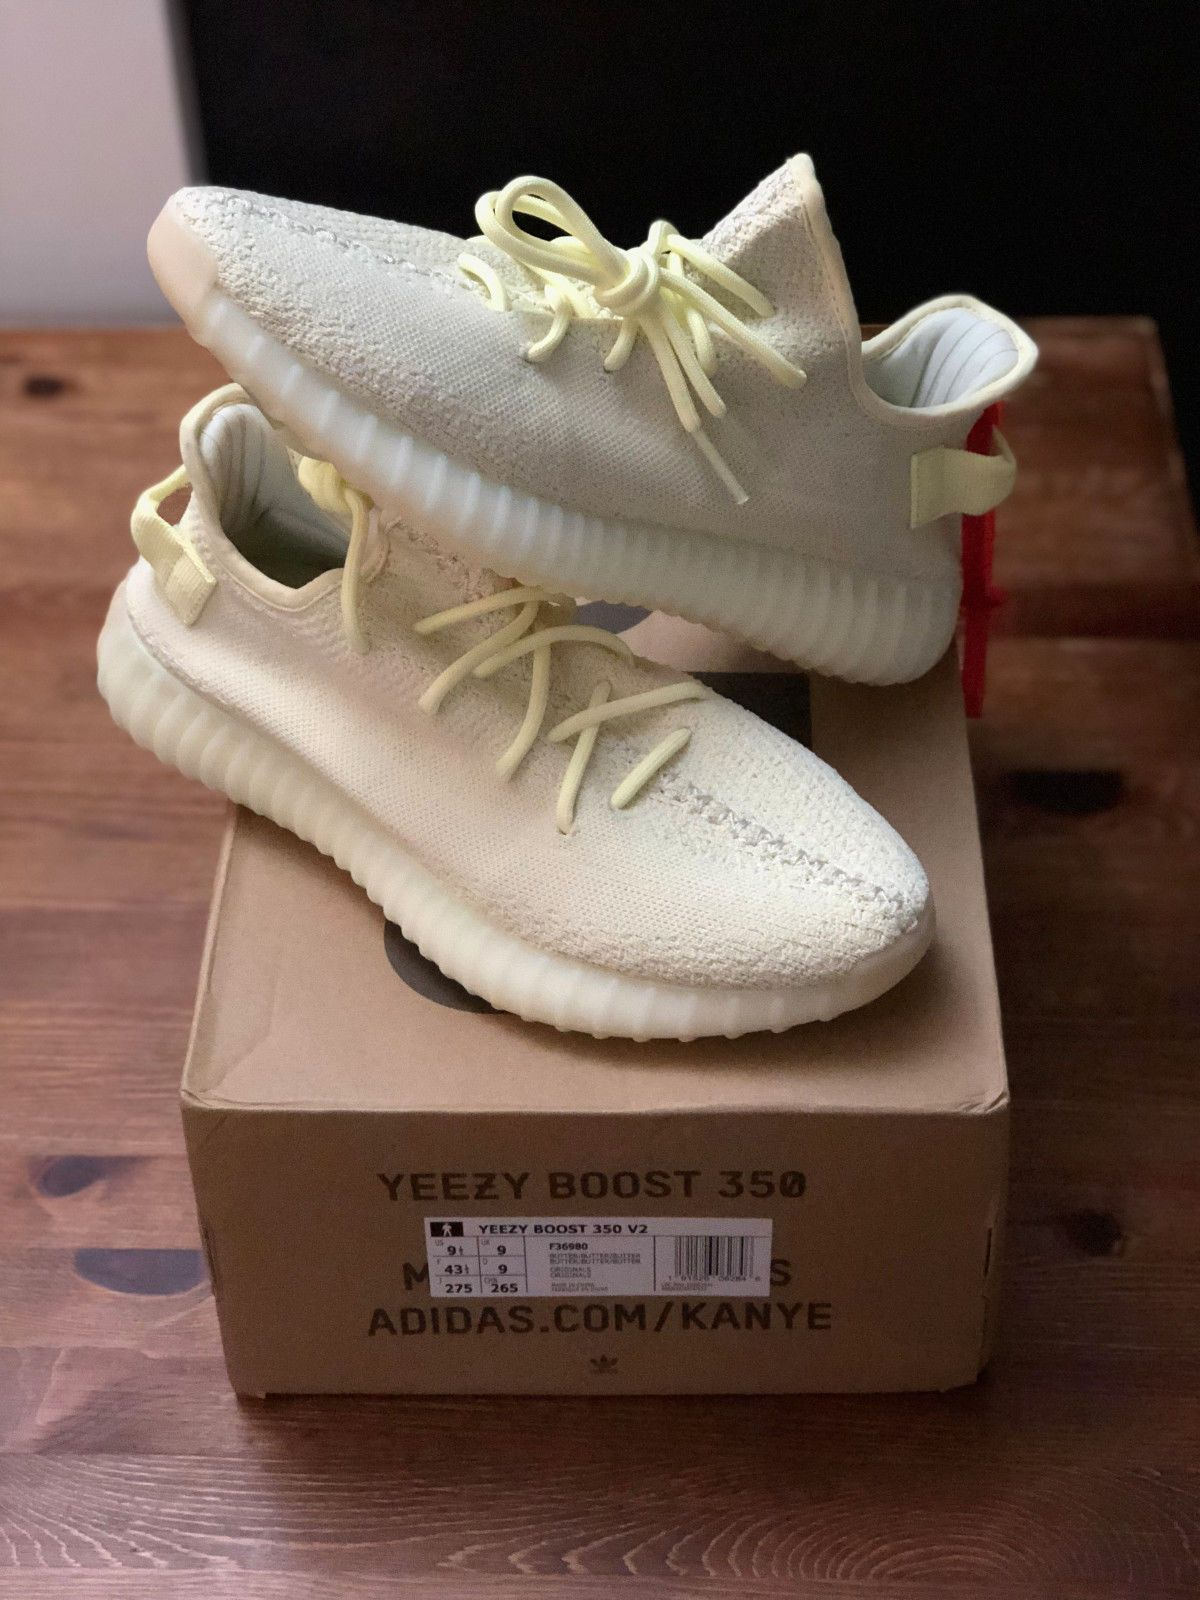 ADIDAS YEEZY BOOST 350 v2 BUTTER UK 9 US9.5 43.5 F36980